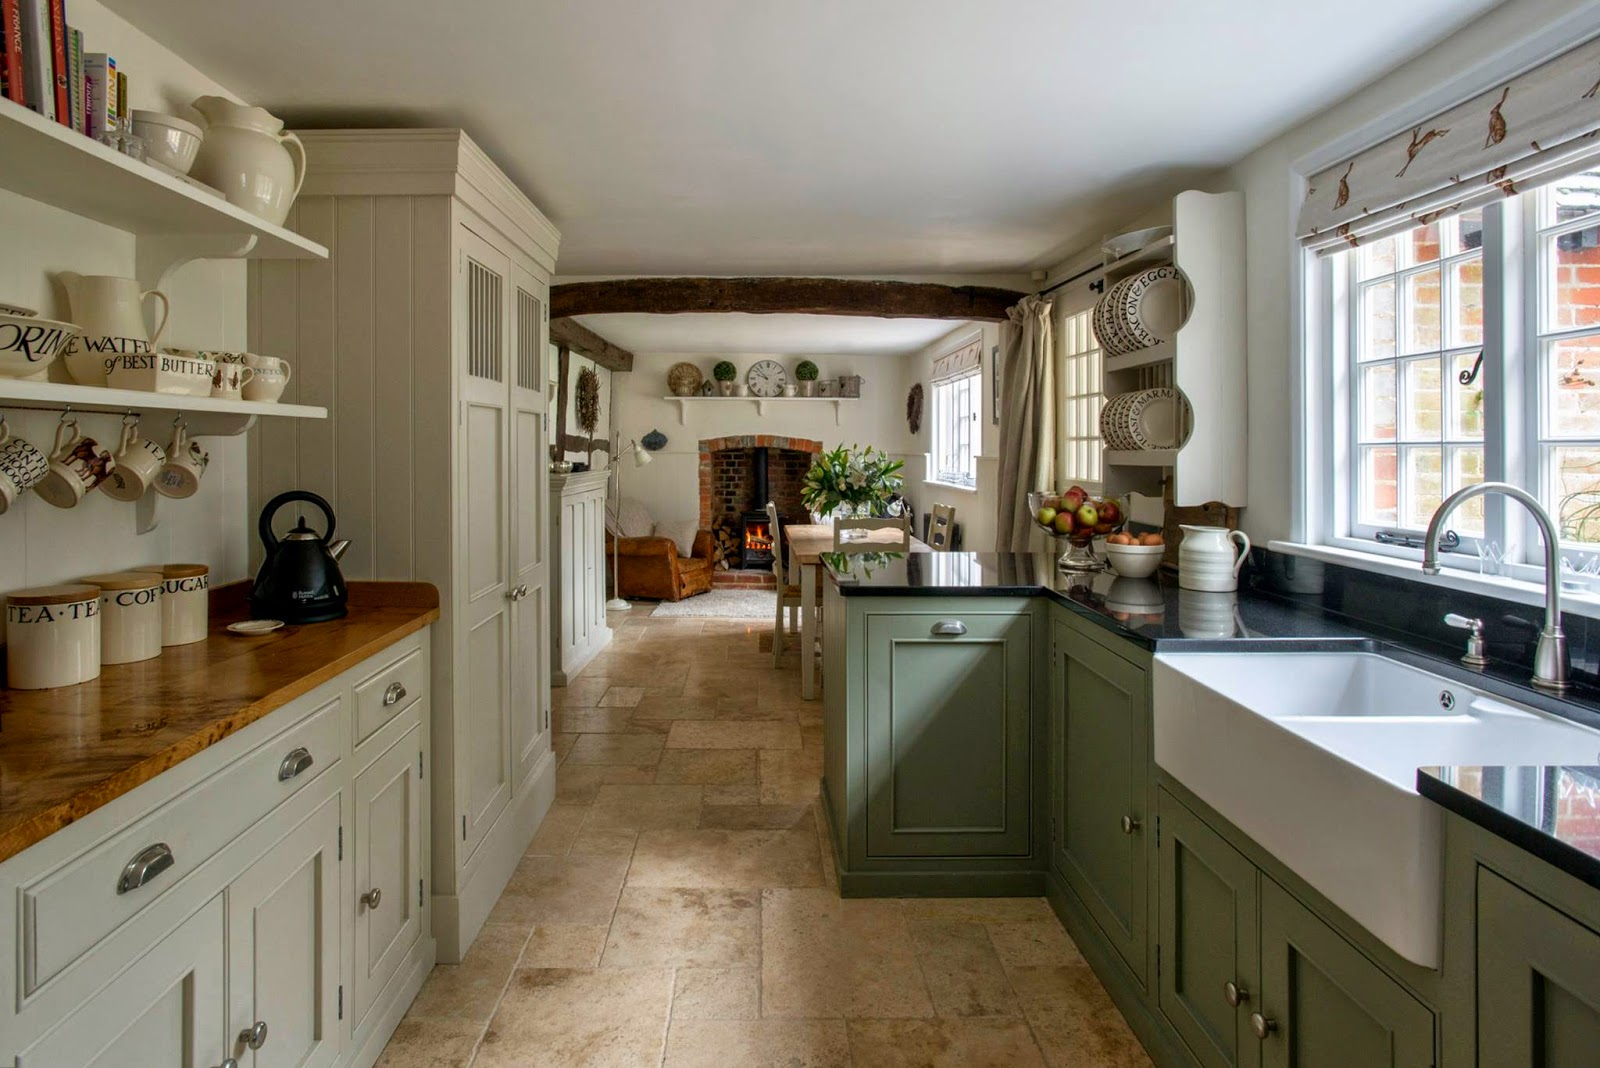 Country Life Kitchen photo - 1